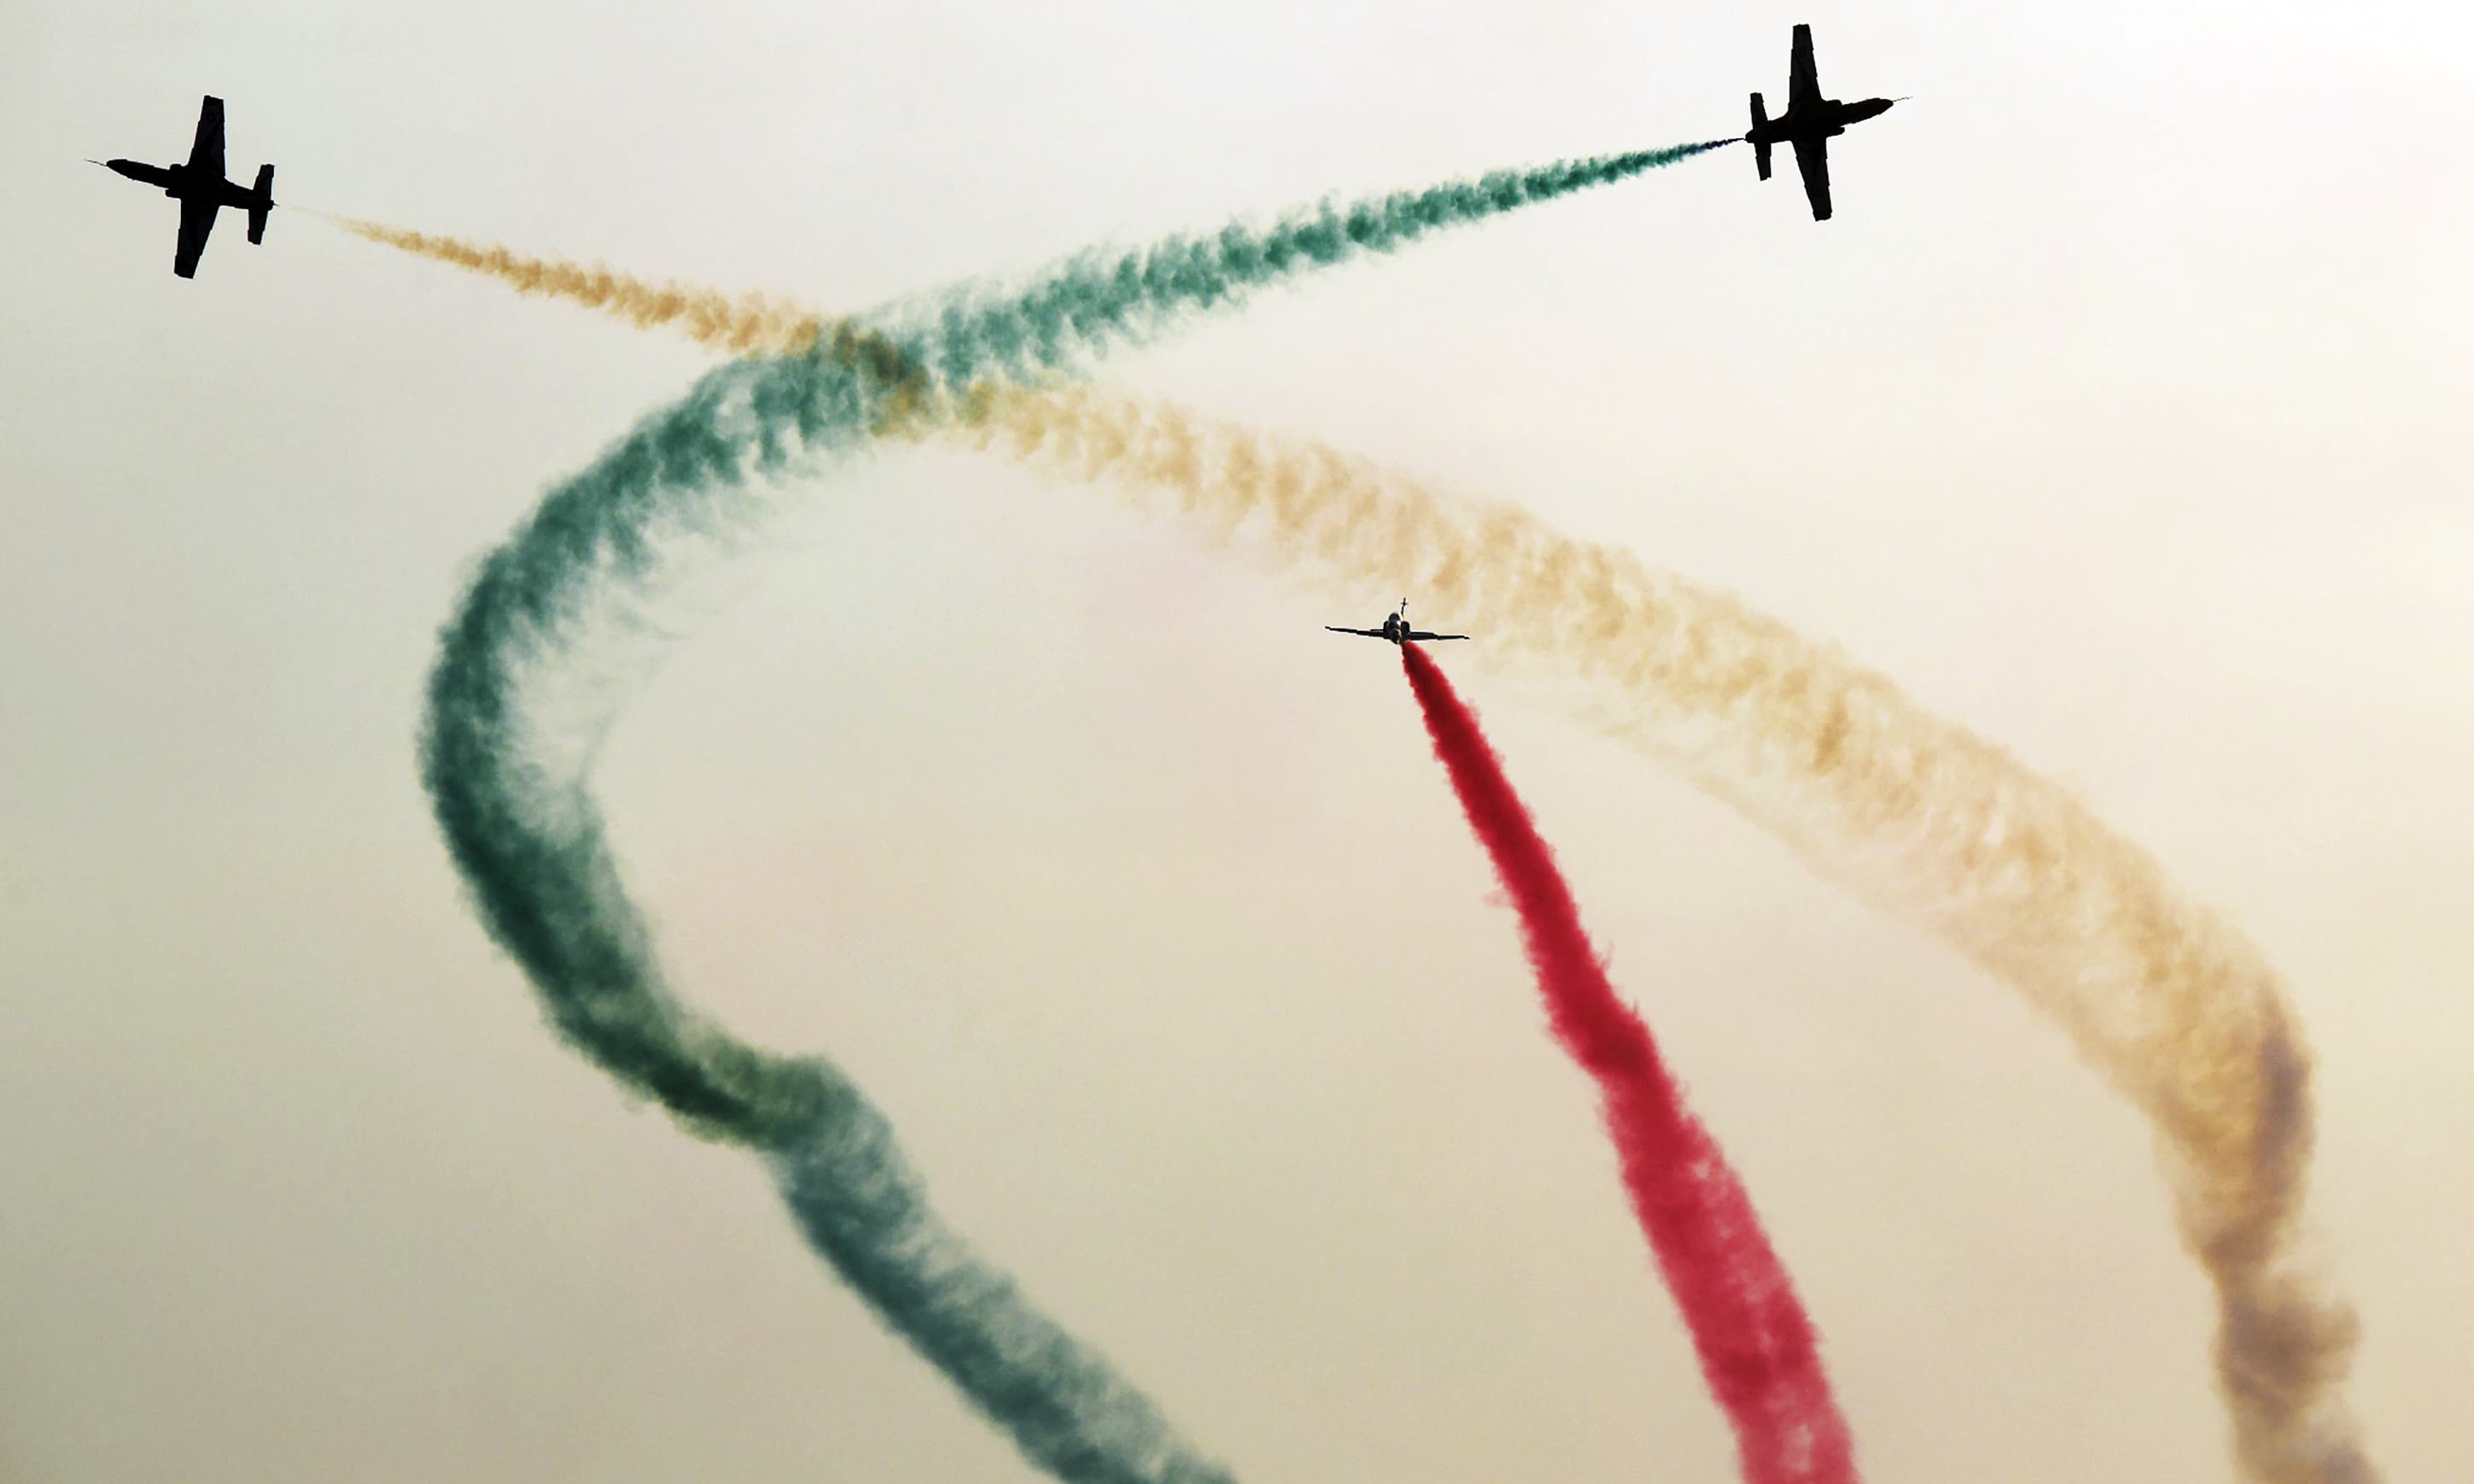 K-8 Karakorums of PAF's Sherdils aerobatics display team fly in formation over Sea View. —AFP